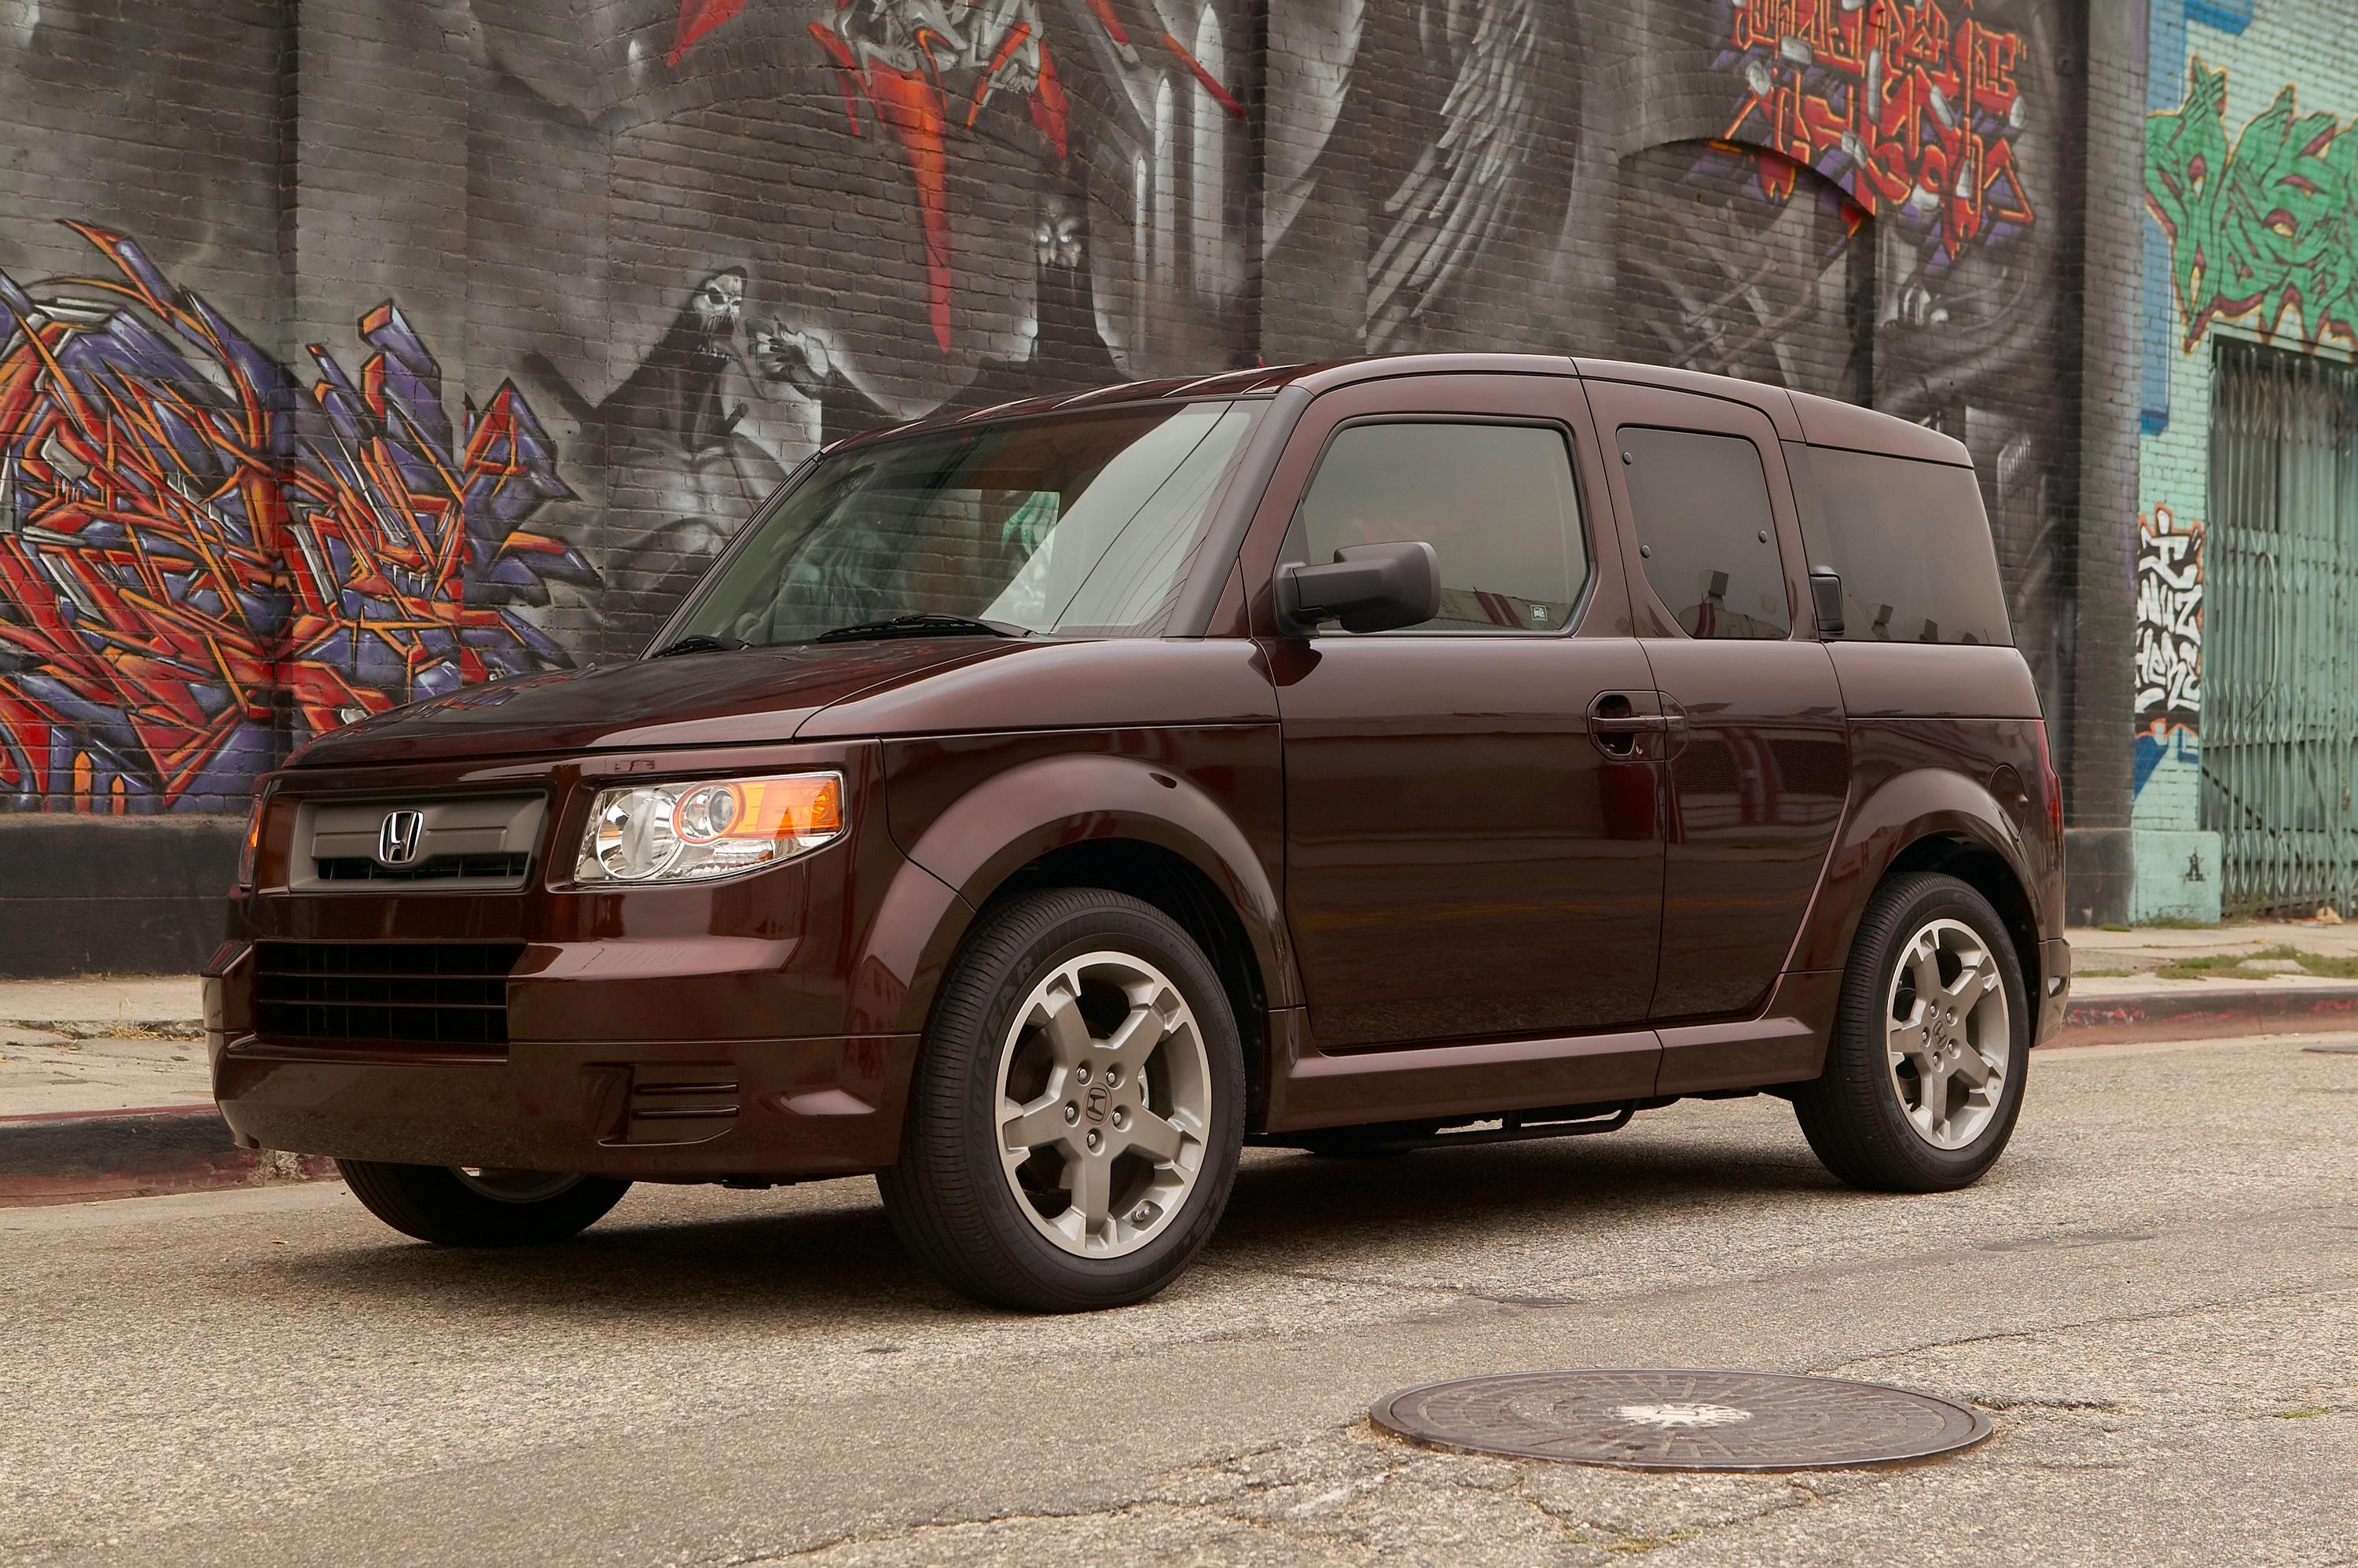 & 2007 Honda Element Review - Top Speed